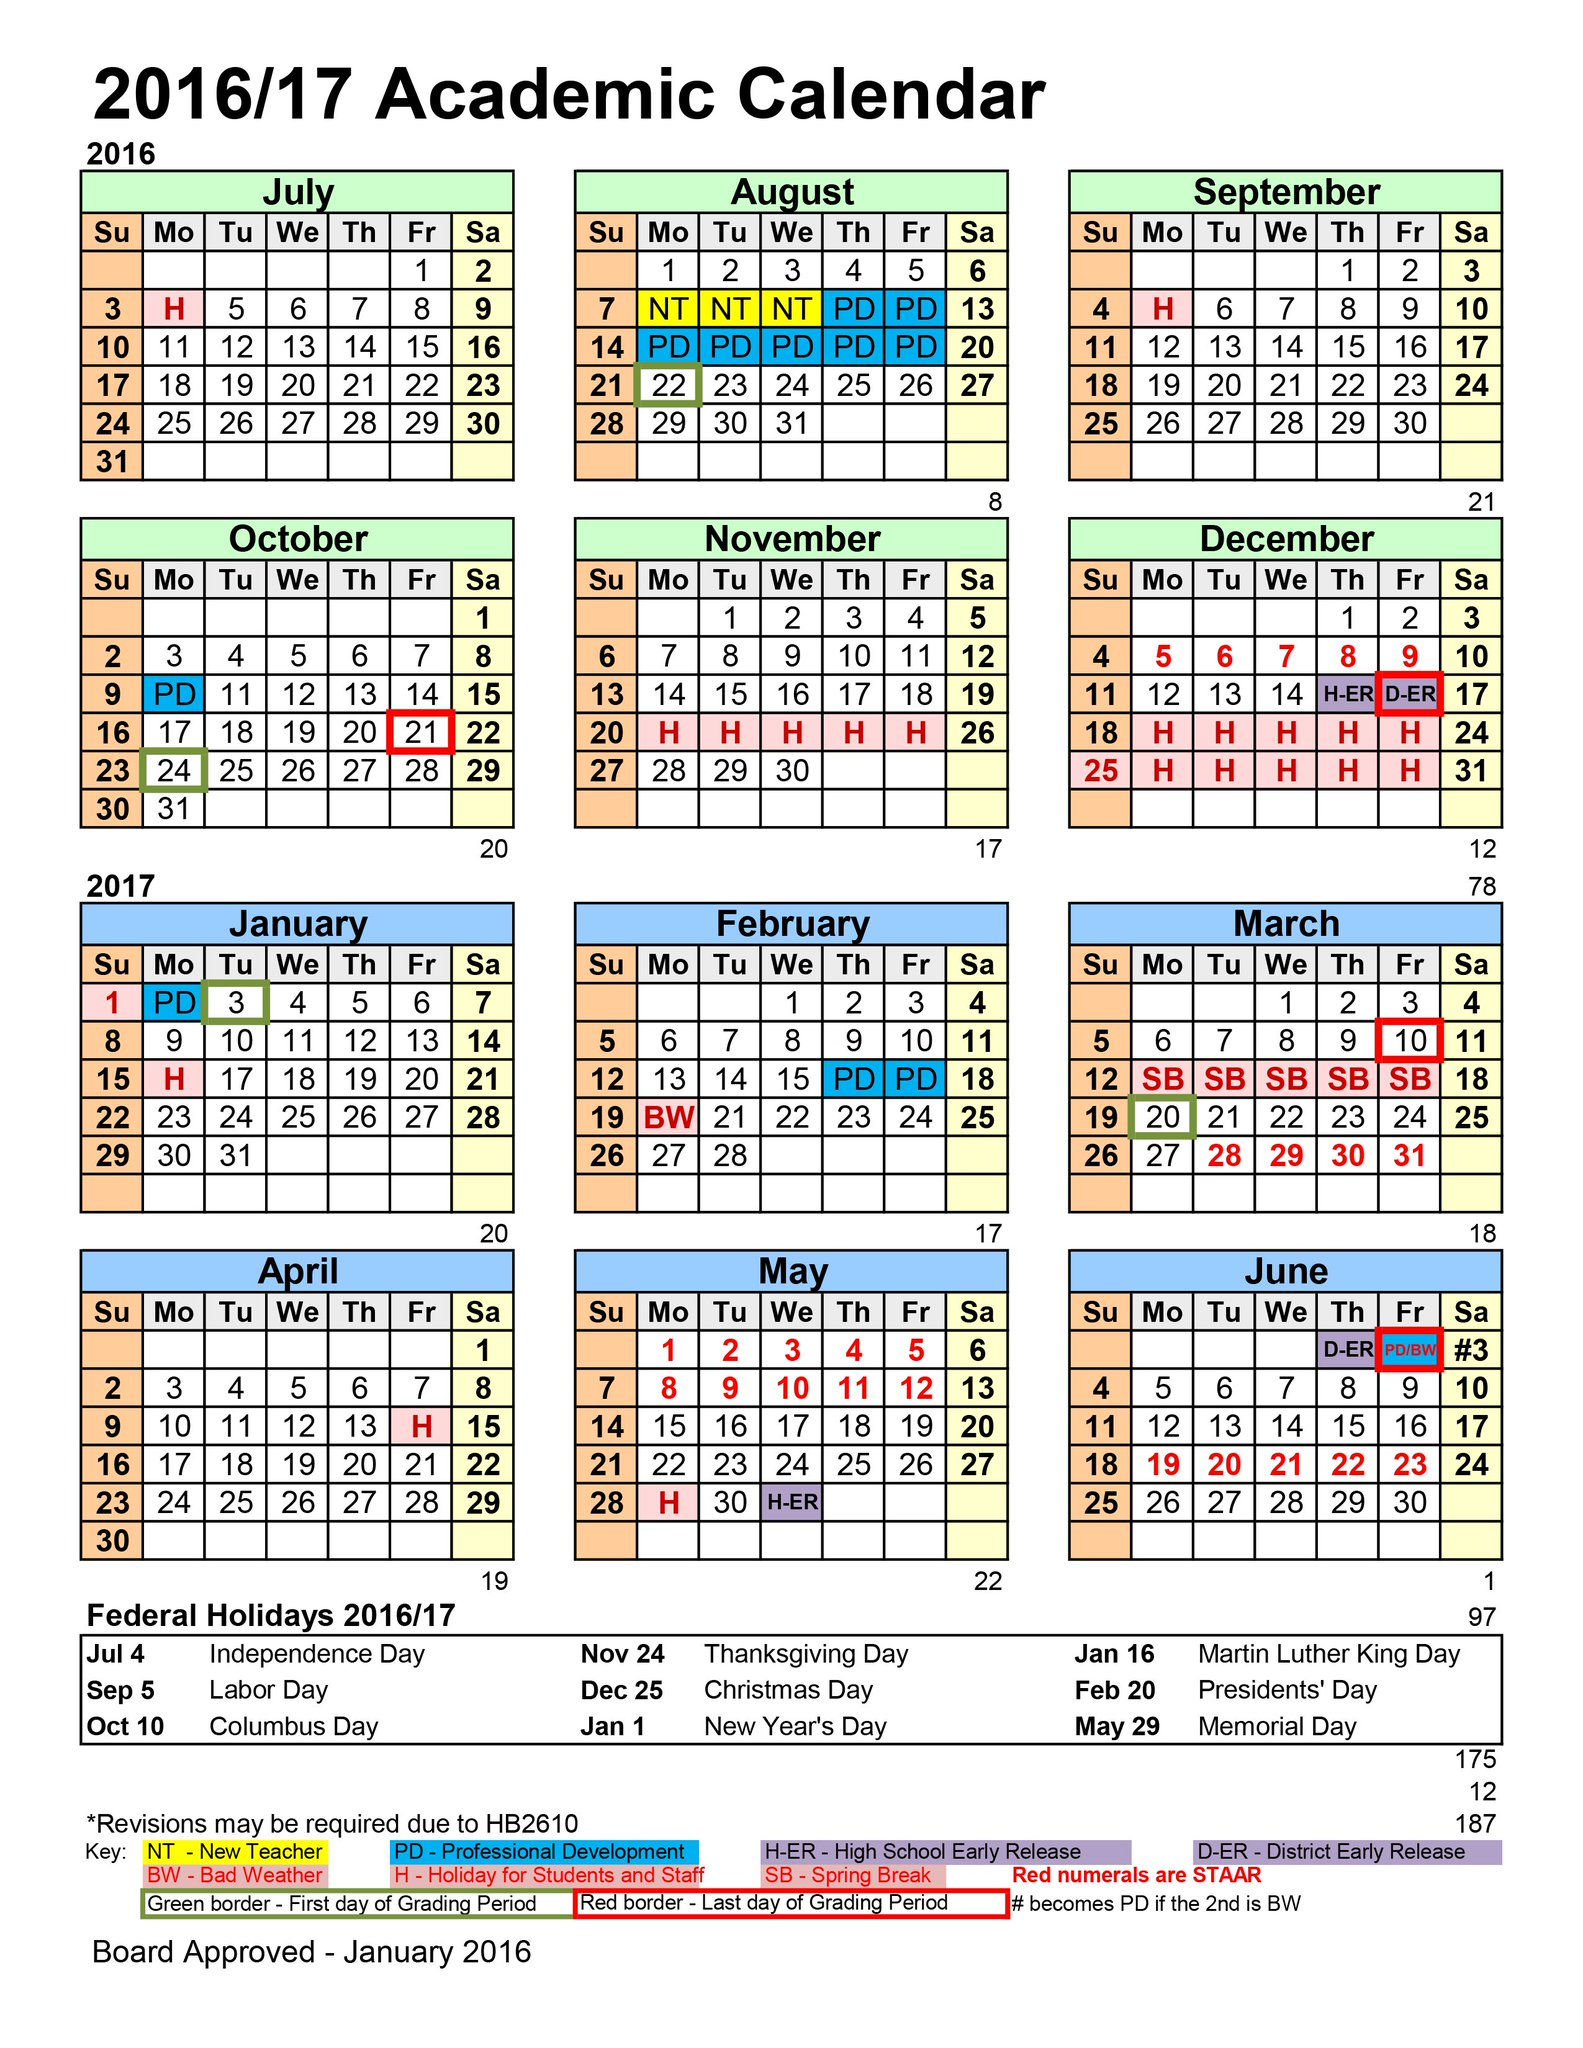 Year Calendar Look : Lake travis isd on twitter quot the  calendar is now